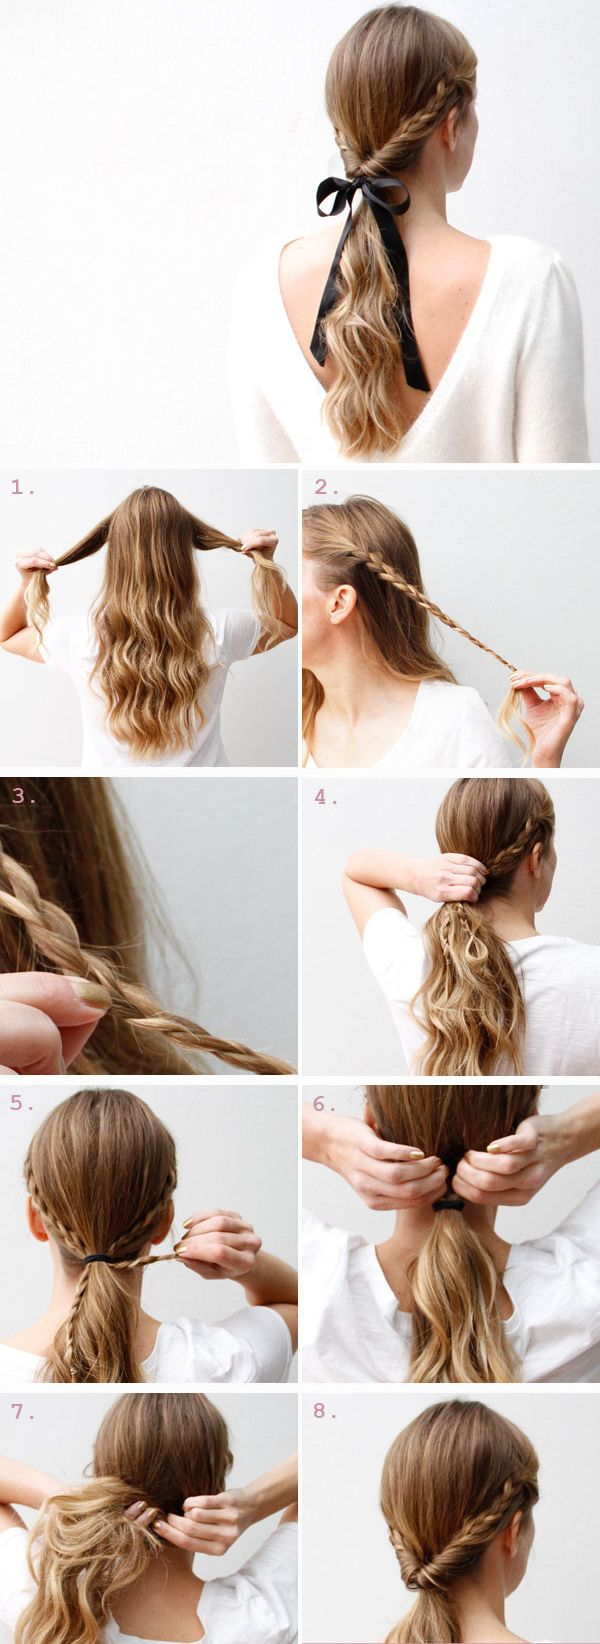 easy step by step hairstyle tutorials for long hair   Easy ...